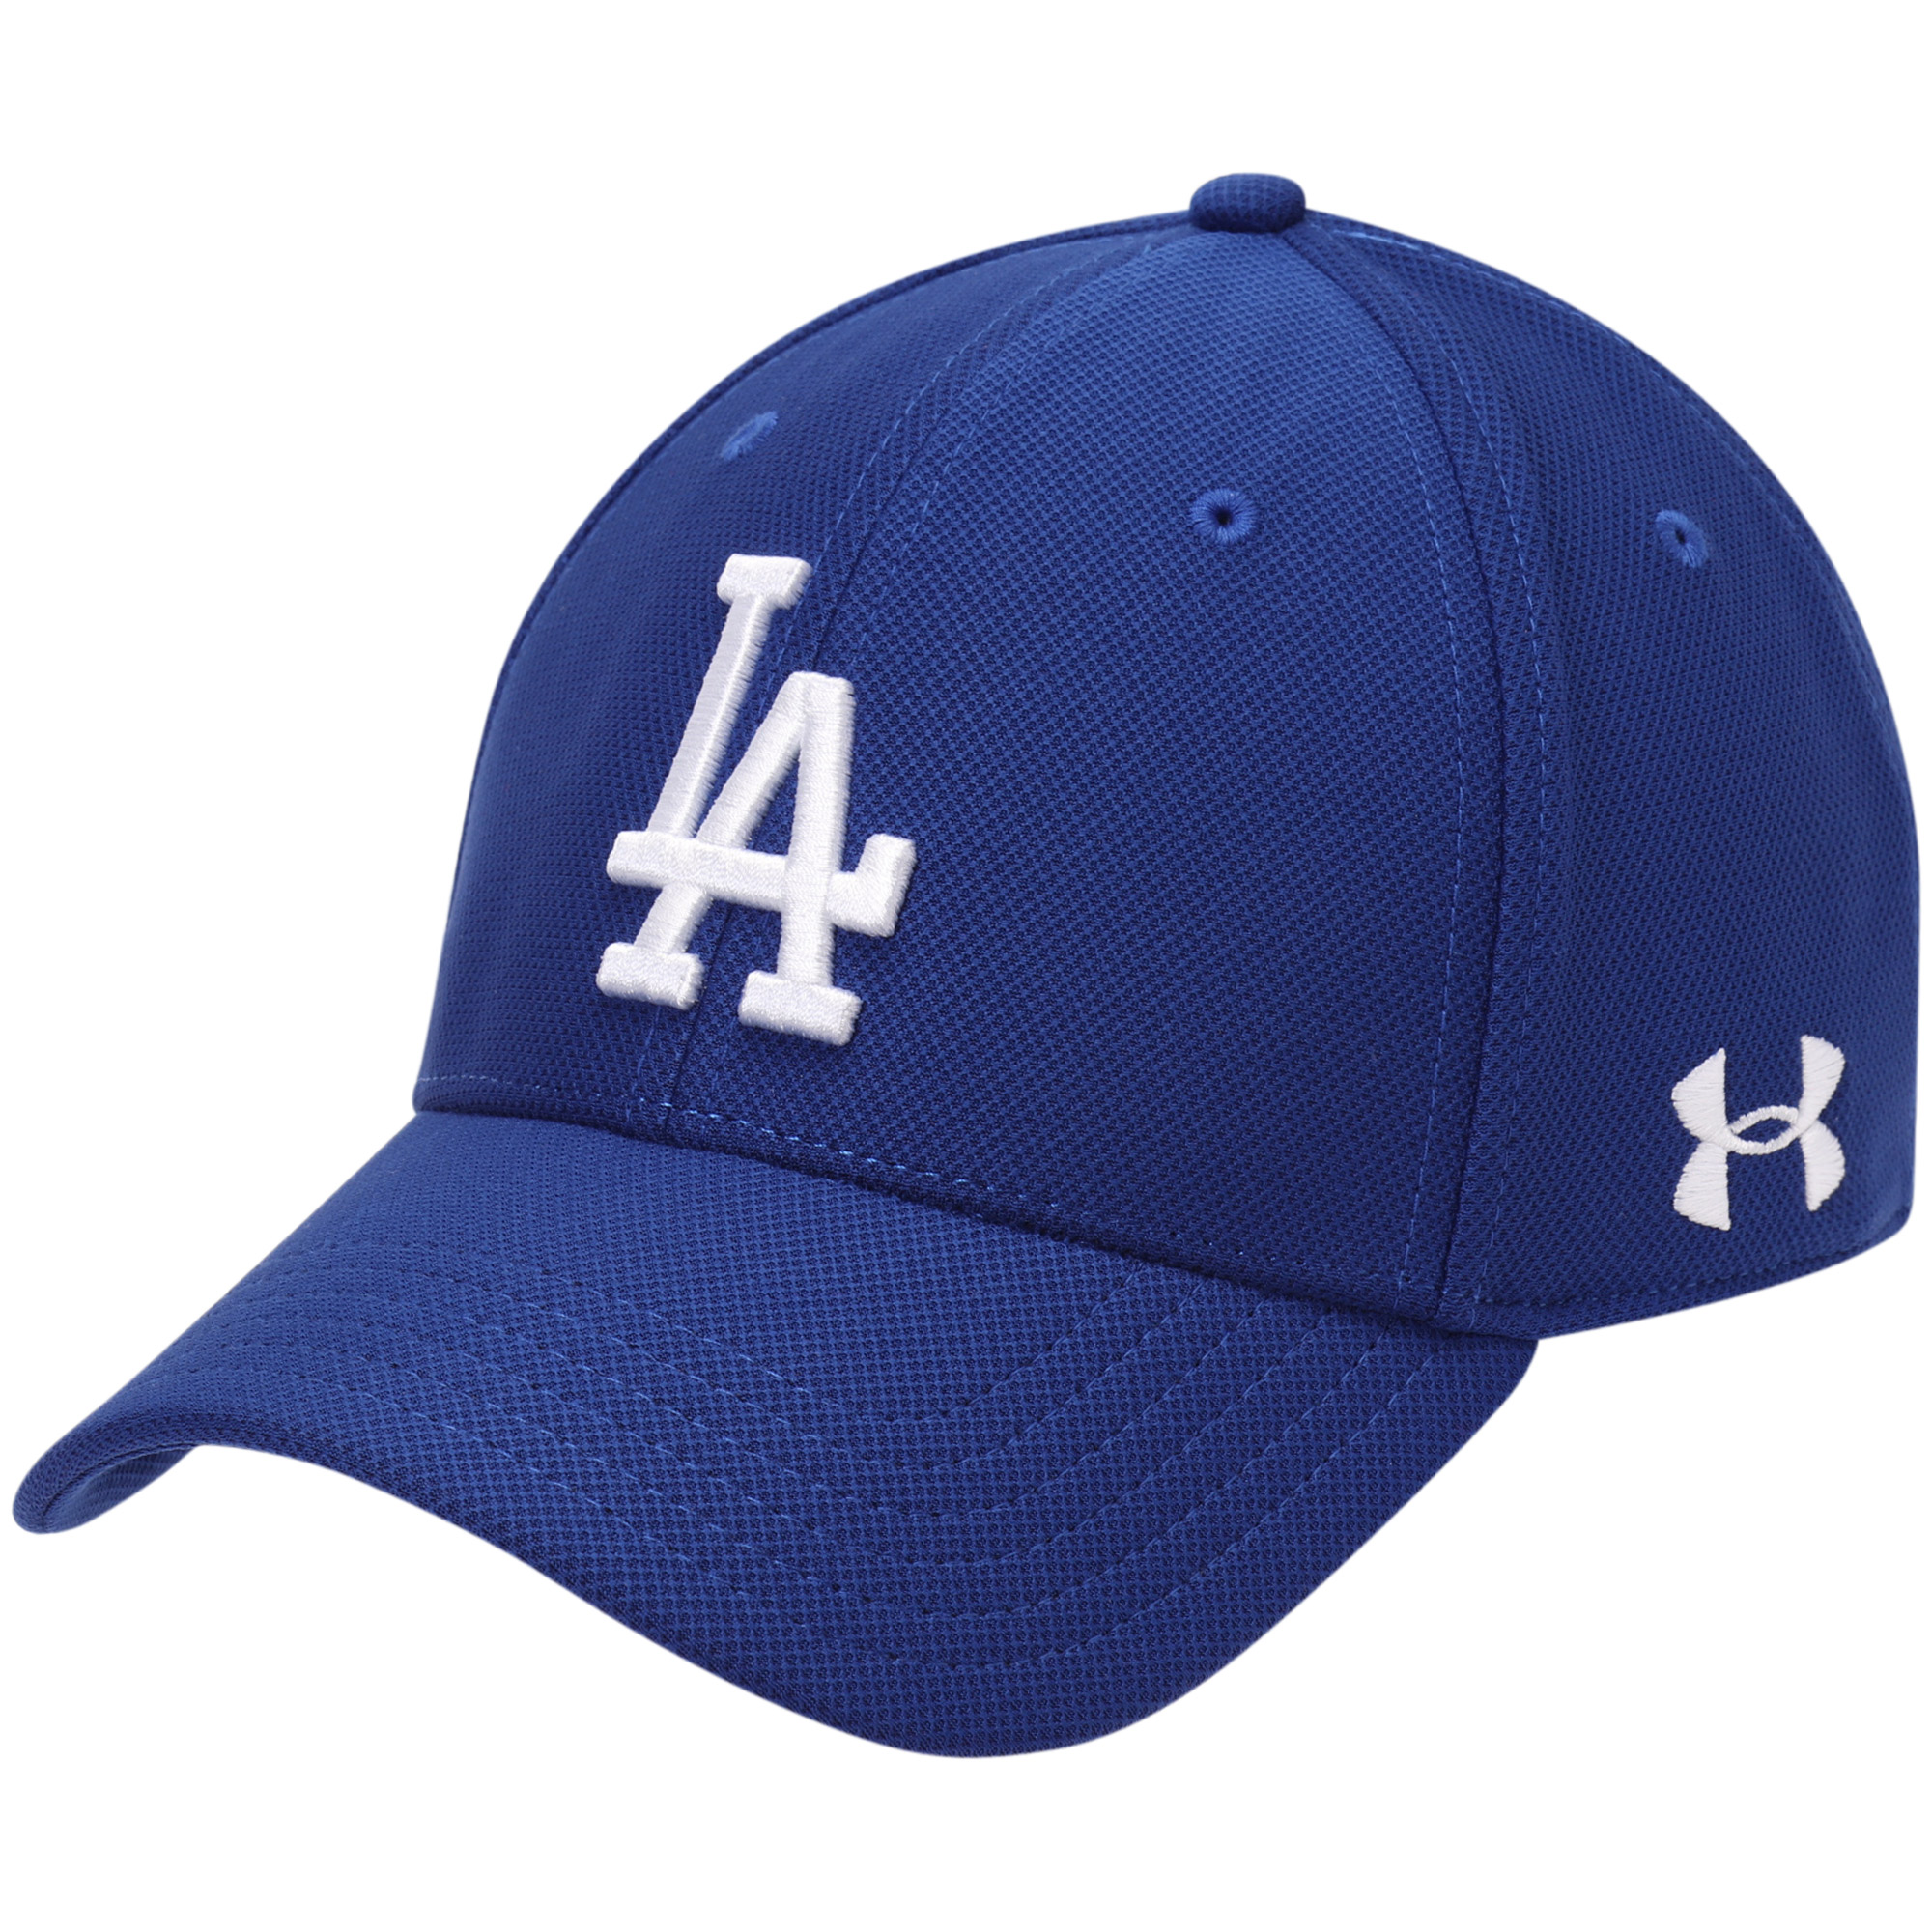 Los Angeles Dodgers Under Armour Blitzing Performance Adjustable Hat - Royal - OSFA